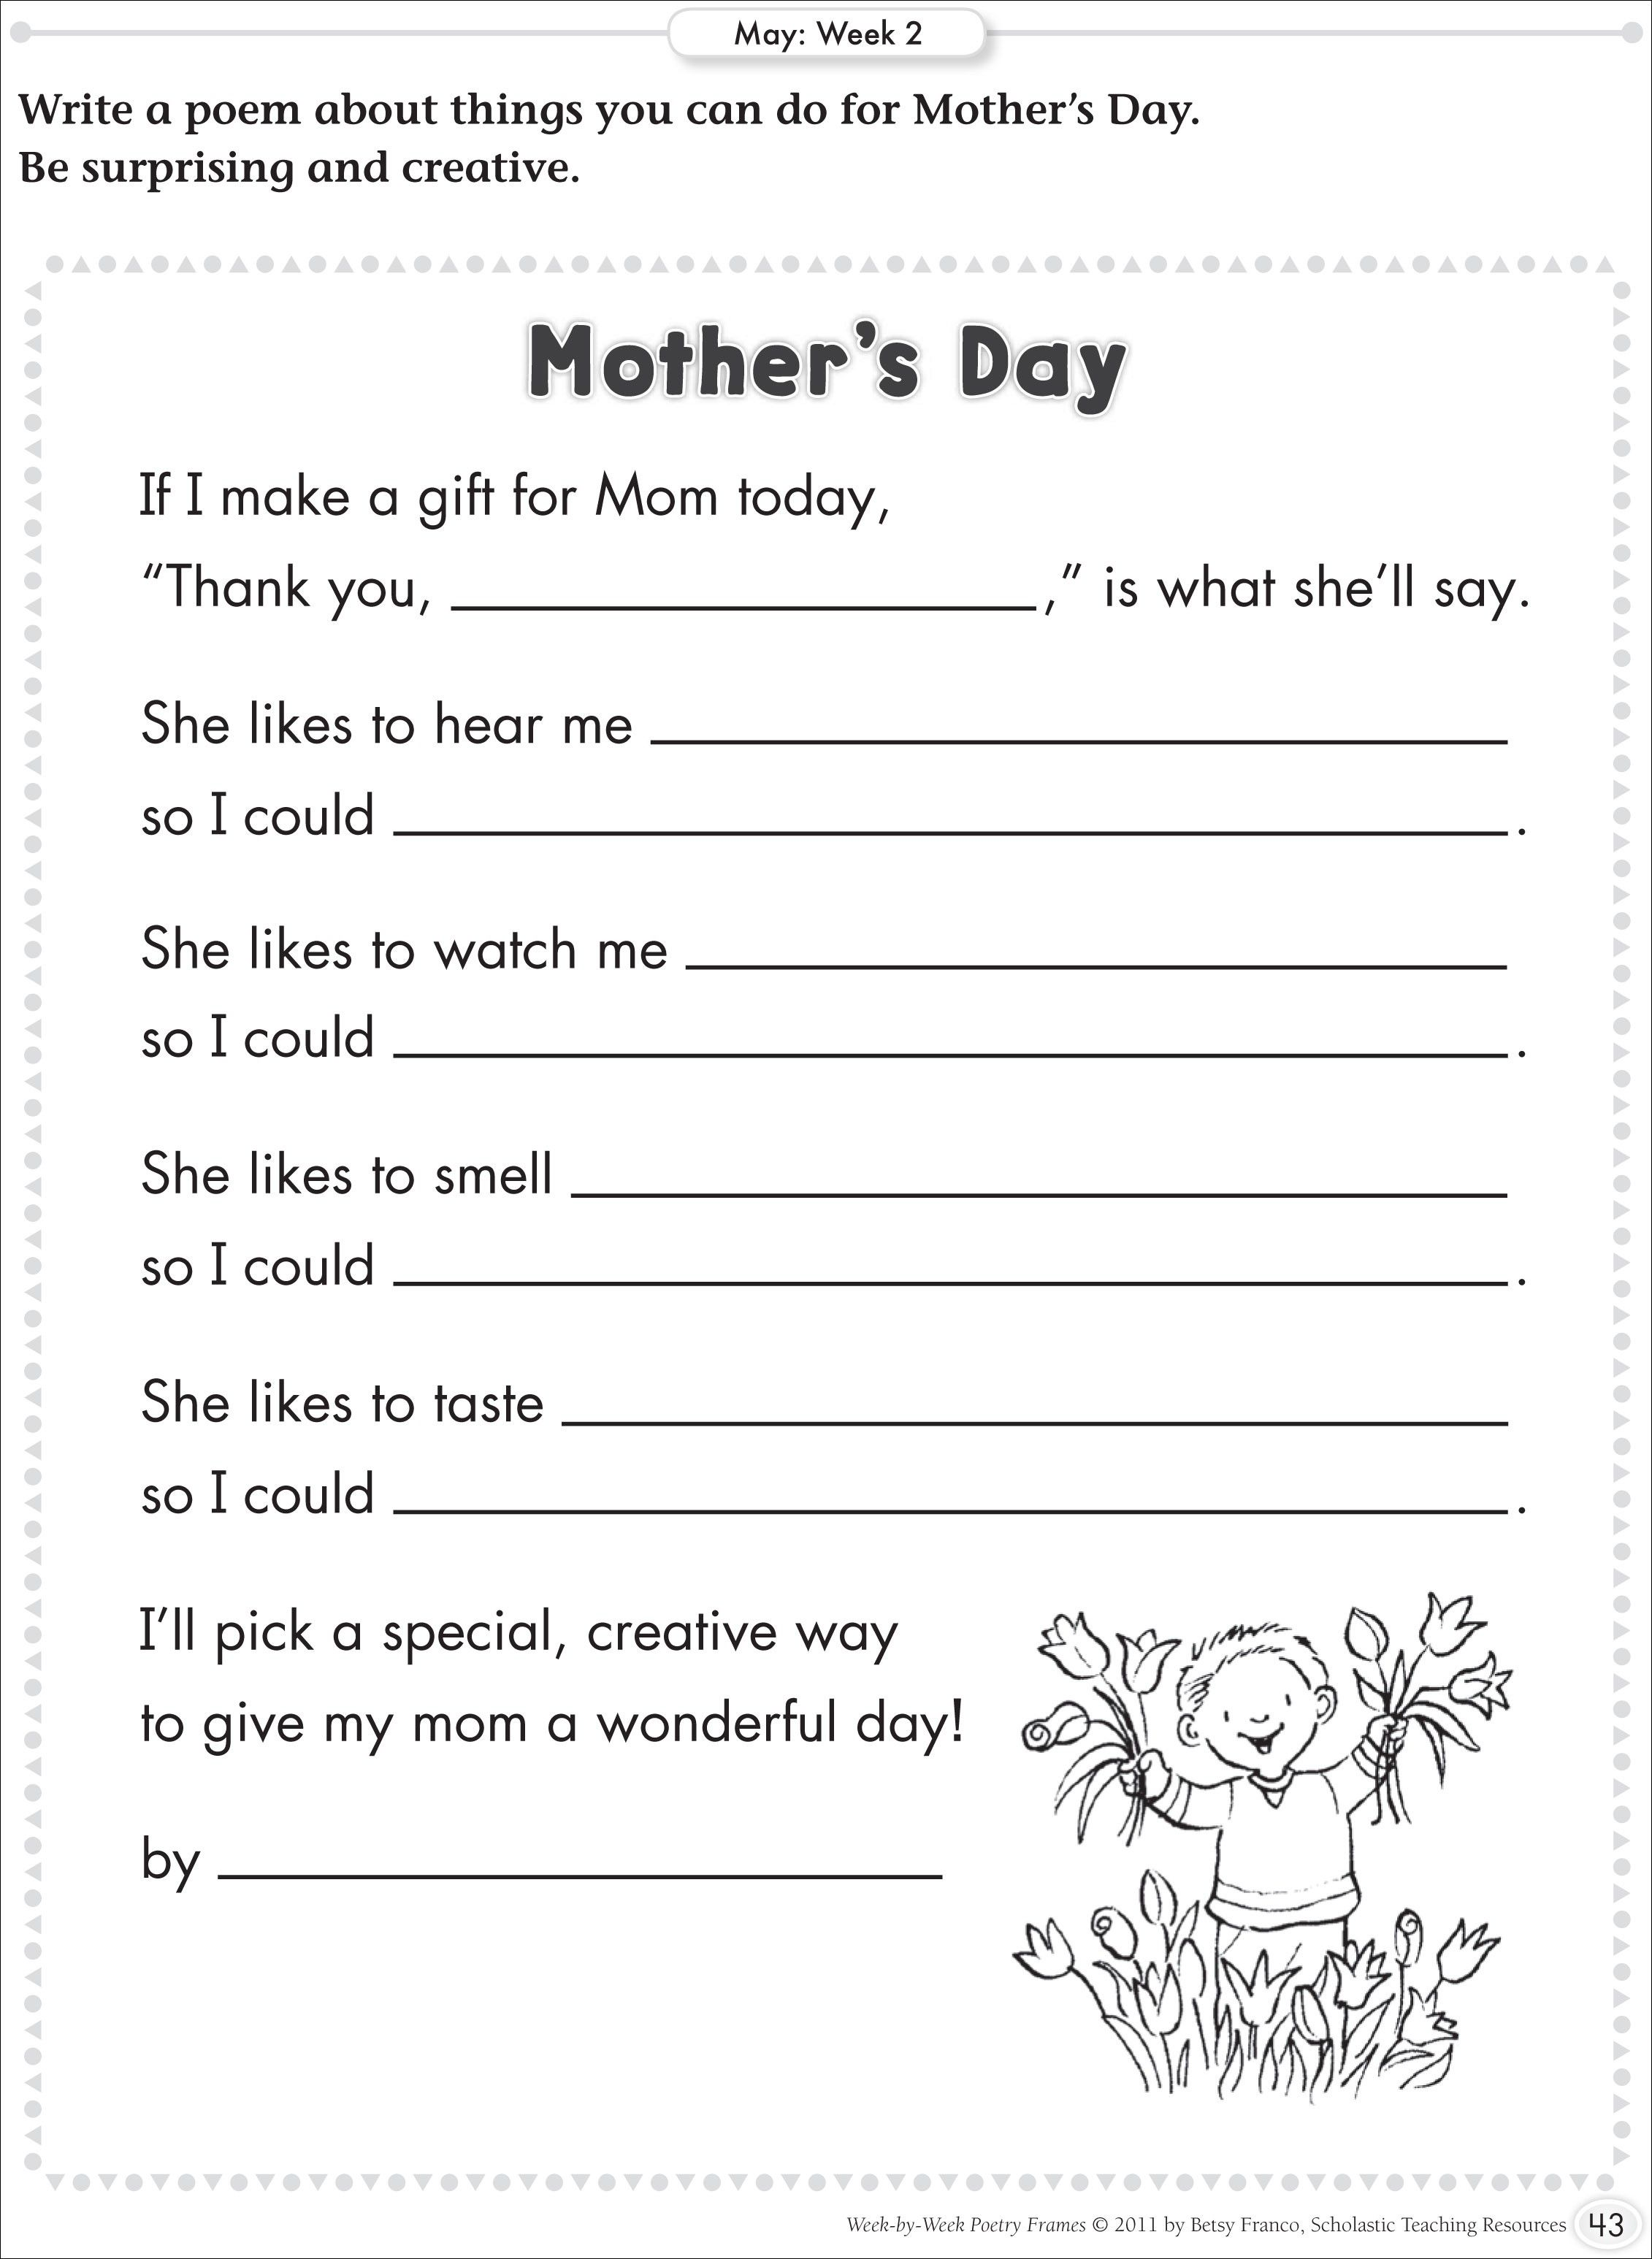 mother 39 s day writing prompts google search loving to learn mothers day poems school. Black Bedroom Furniture Sets. Home Design Ideas